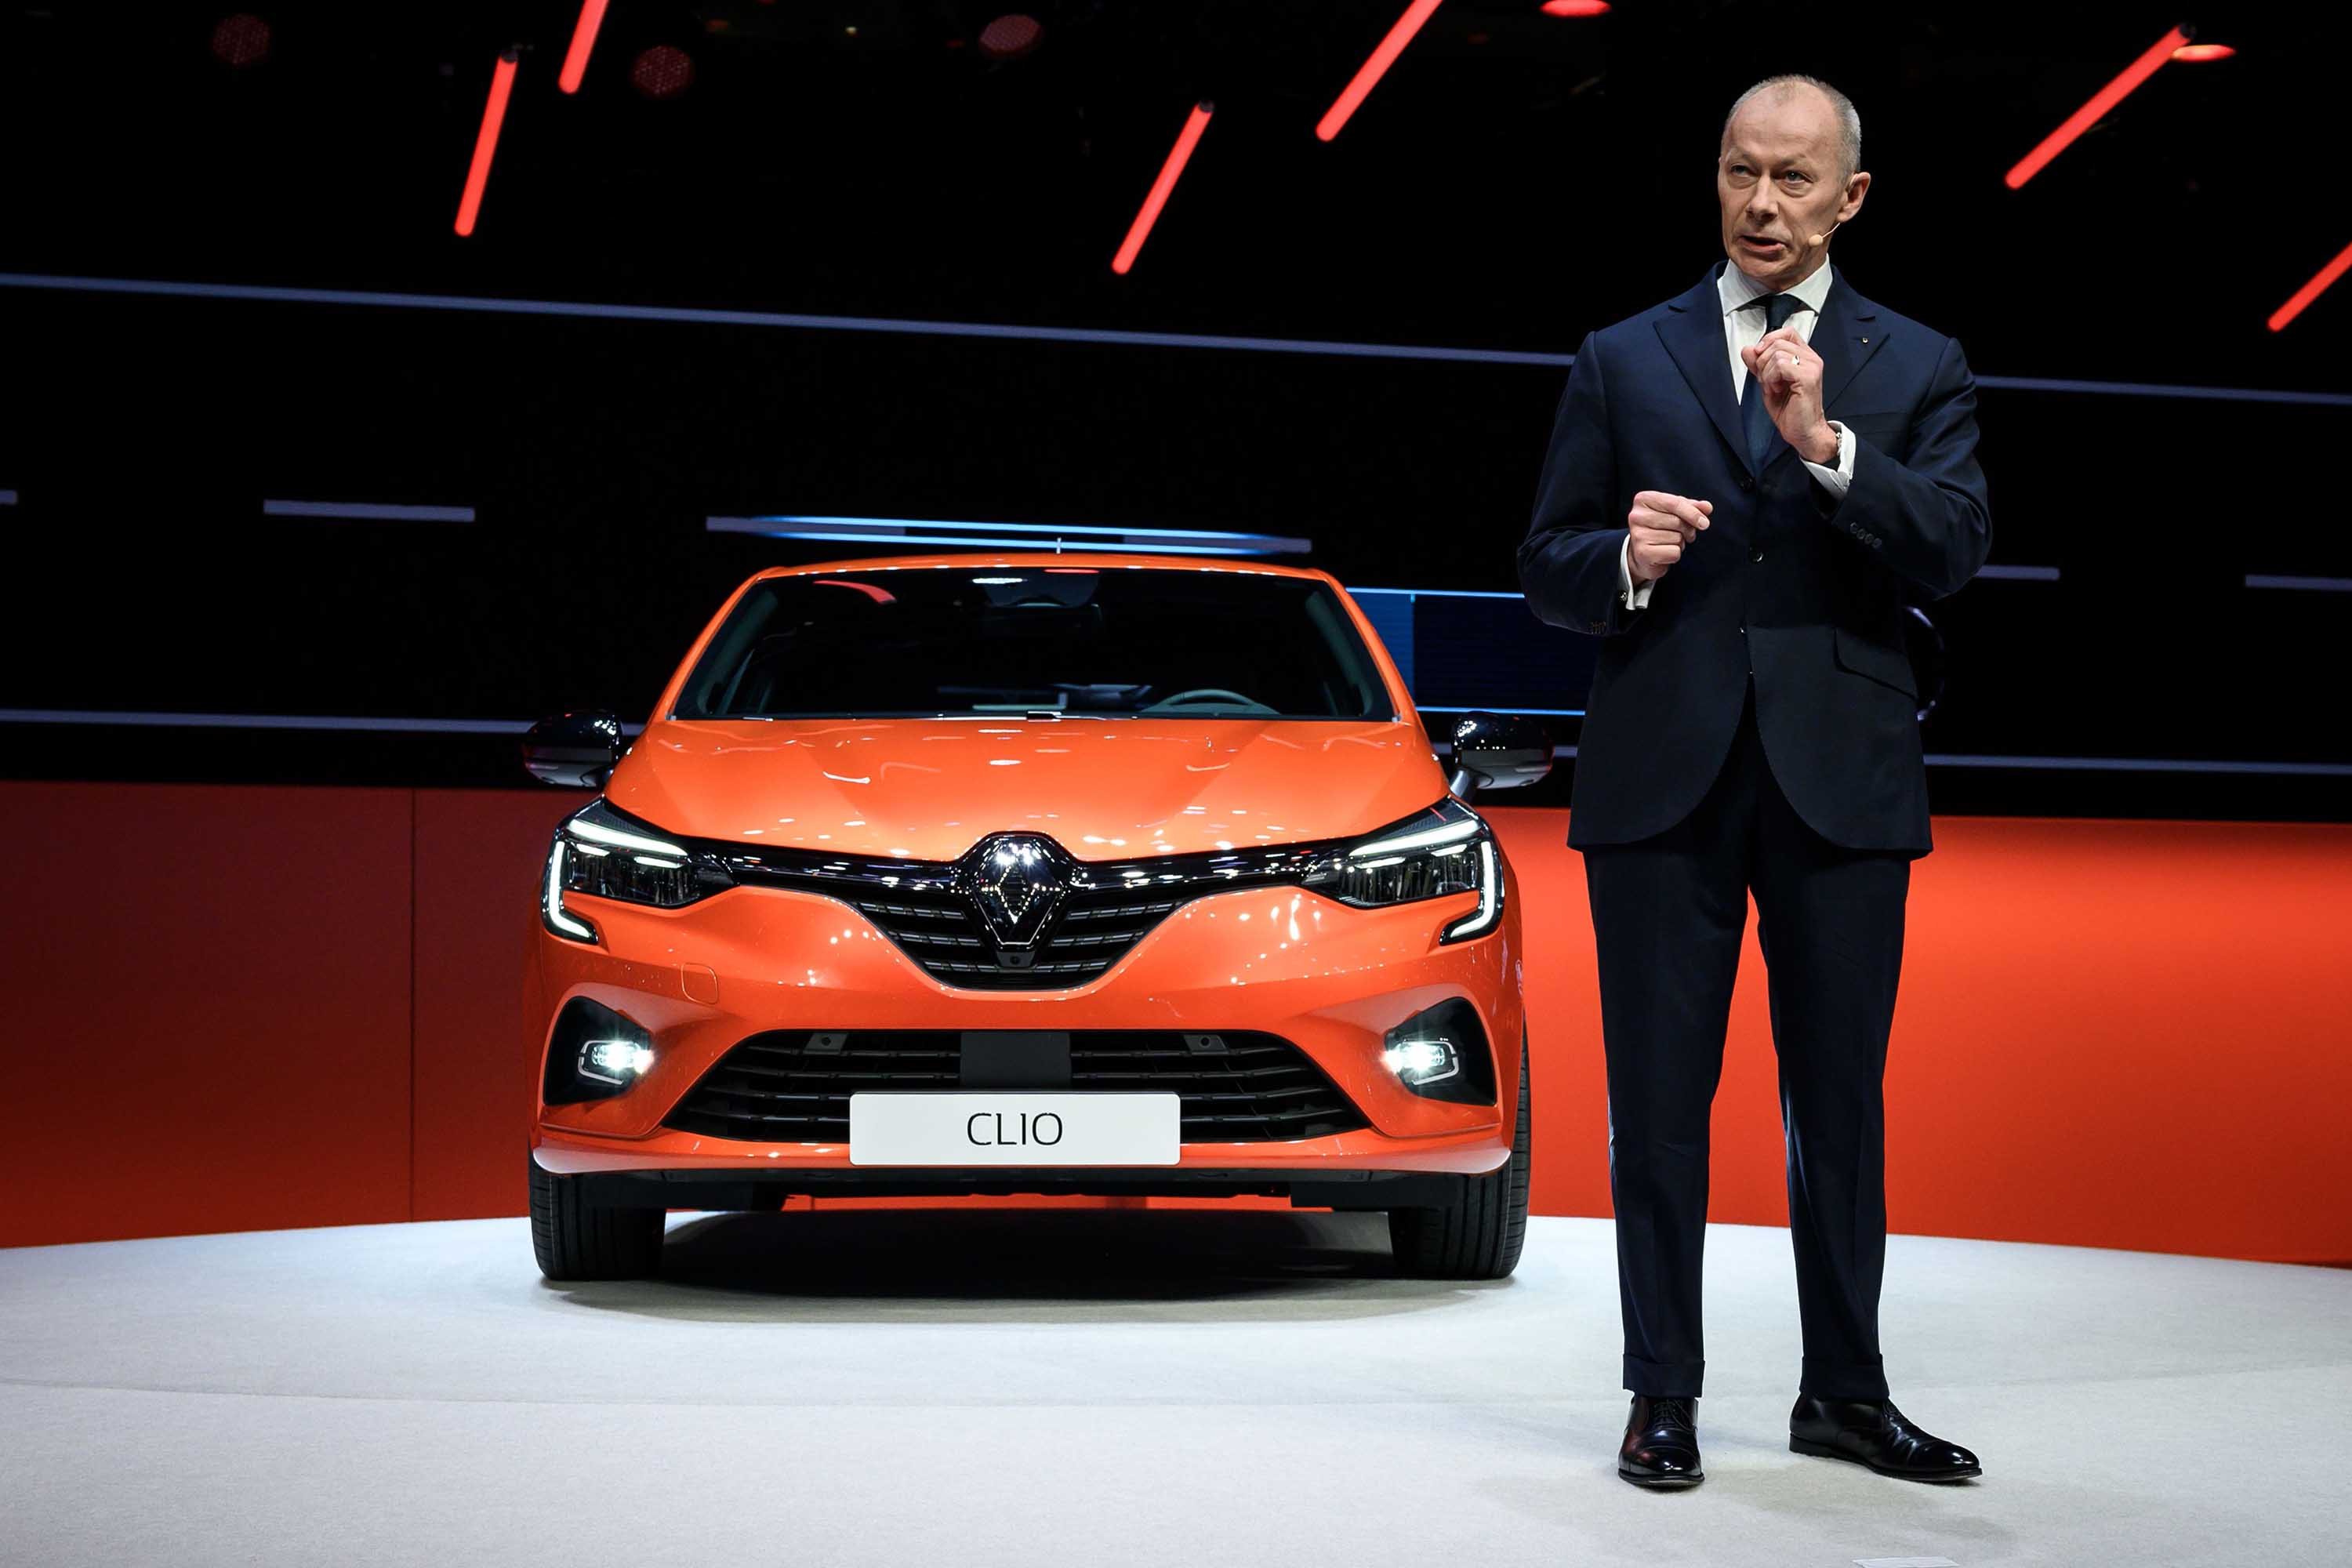 CEO Thierry Bolloré unveiled Renault's new Clio in Geneva.